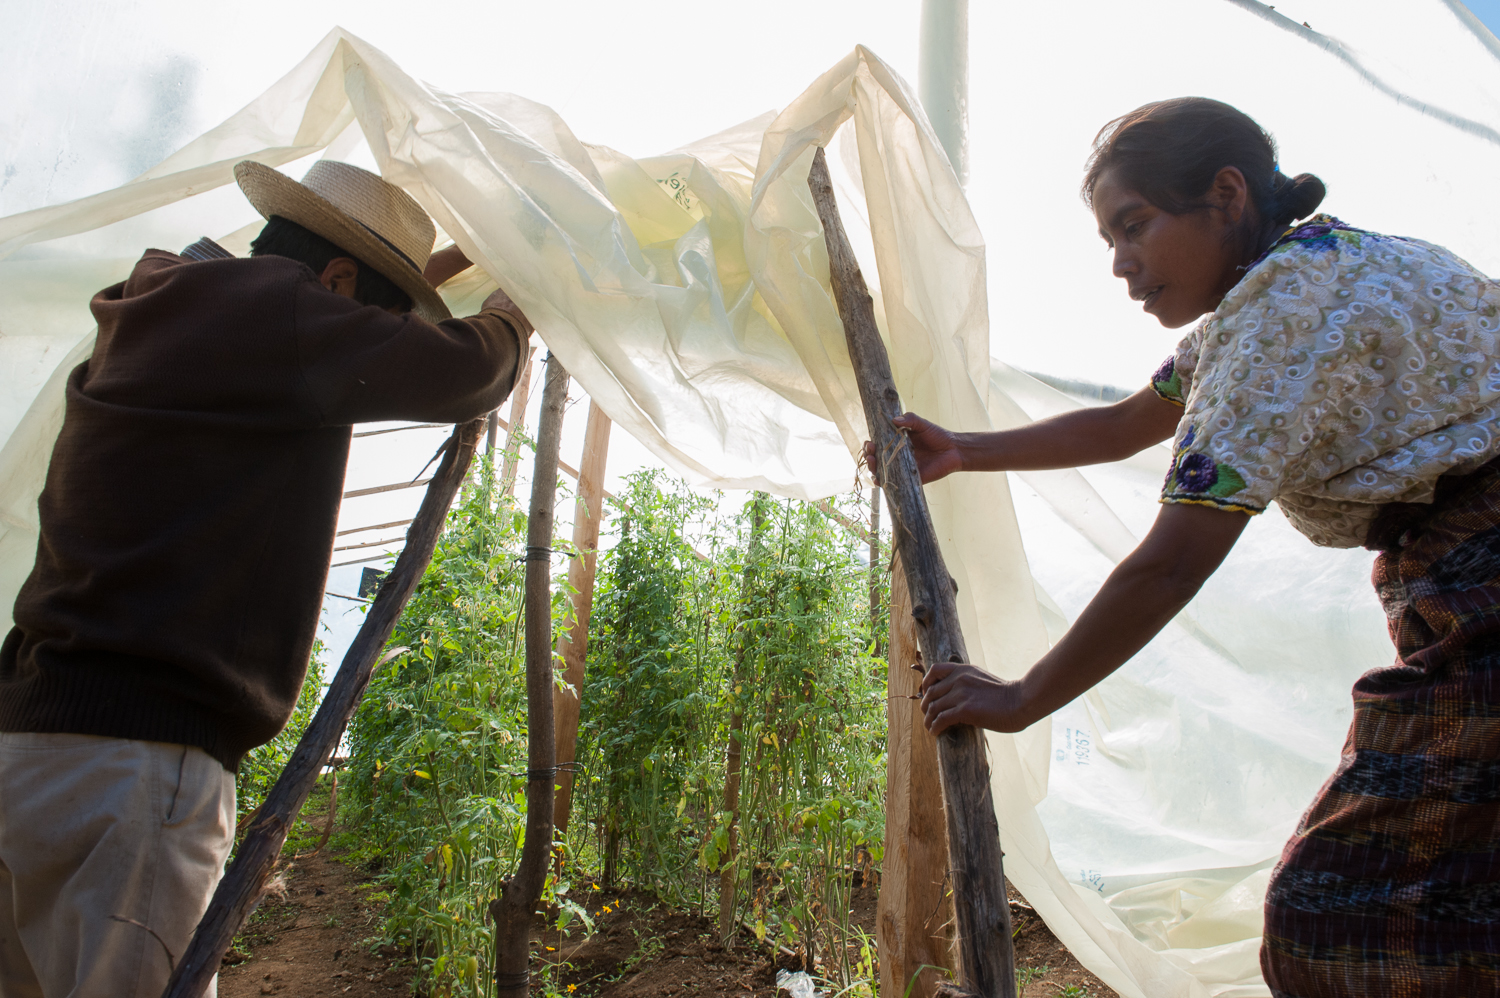 Victoria, a Mam farmer, and her comrade open the greenhouse where they're experimenting with hothouse tomatoes. Victoria lives in the arid highlands of northwestern Guatemala. How are indigenous women using agriculture as a tool to resist economic development projects?  Photo Credit - KJ Dakin